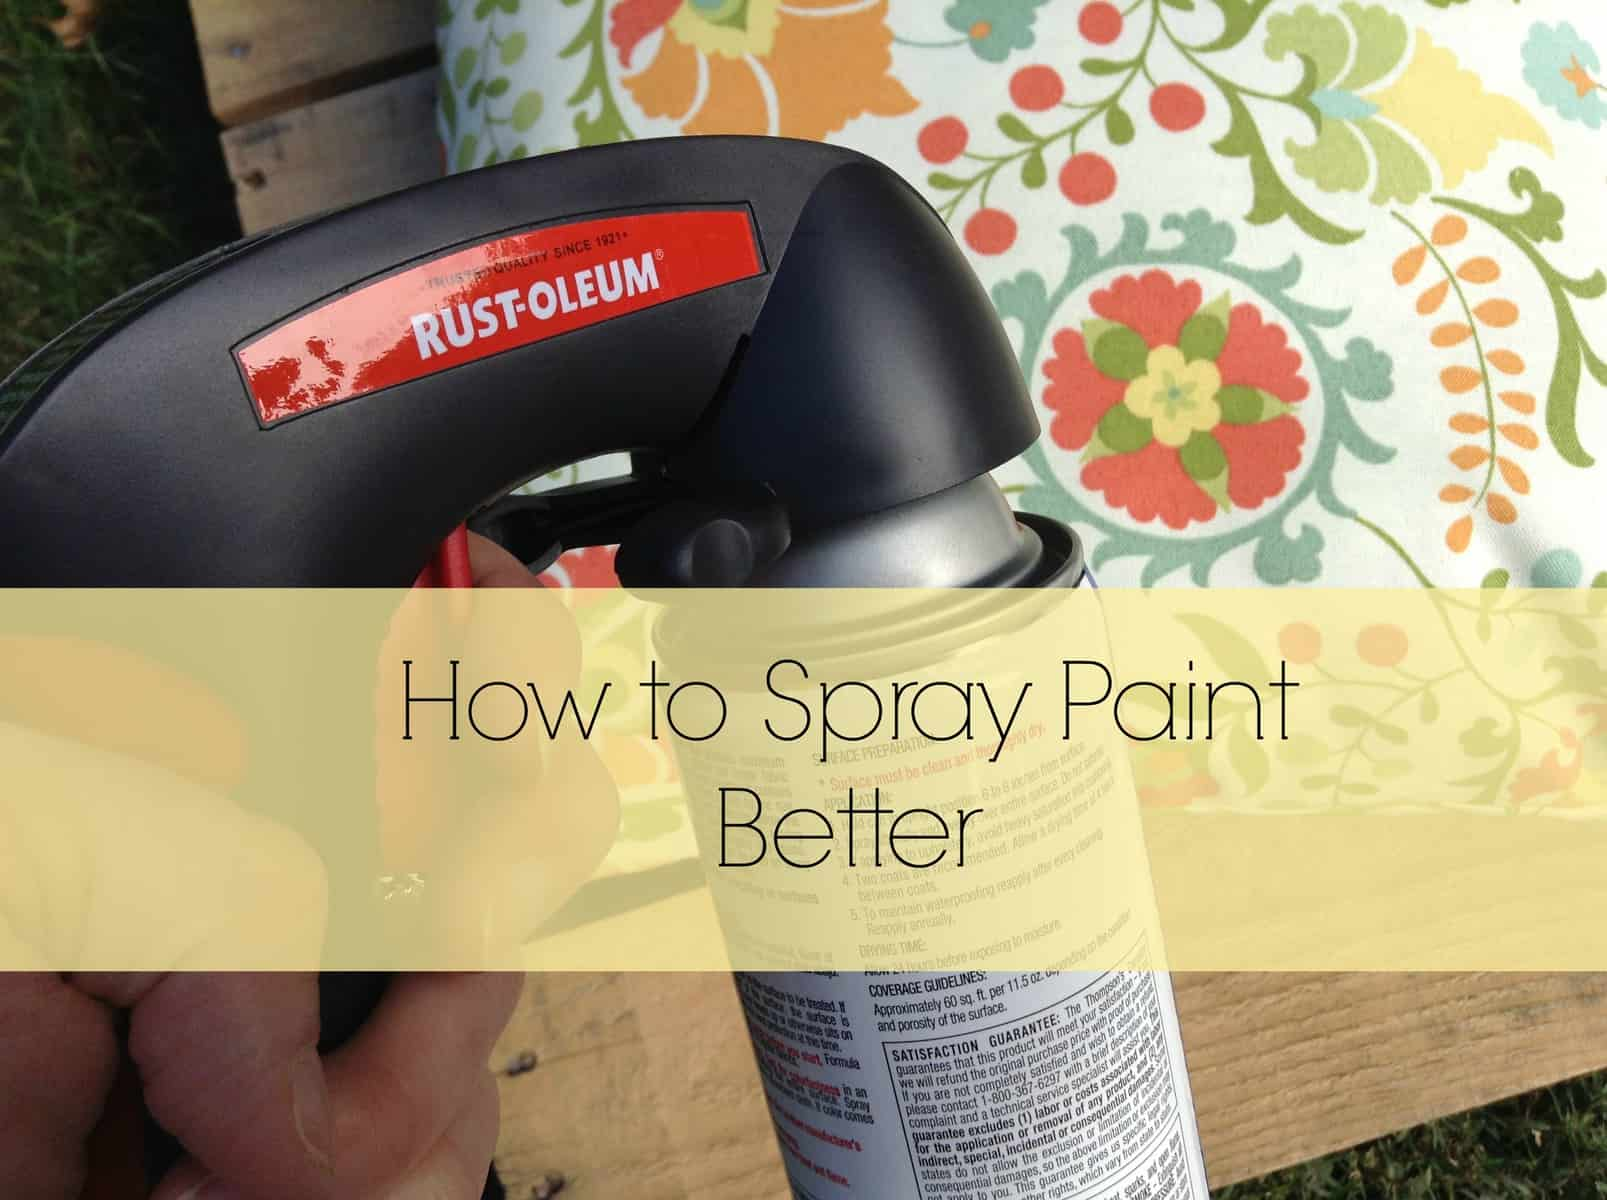 How to spray paint better heartwork organizing tips for for Which paint is better